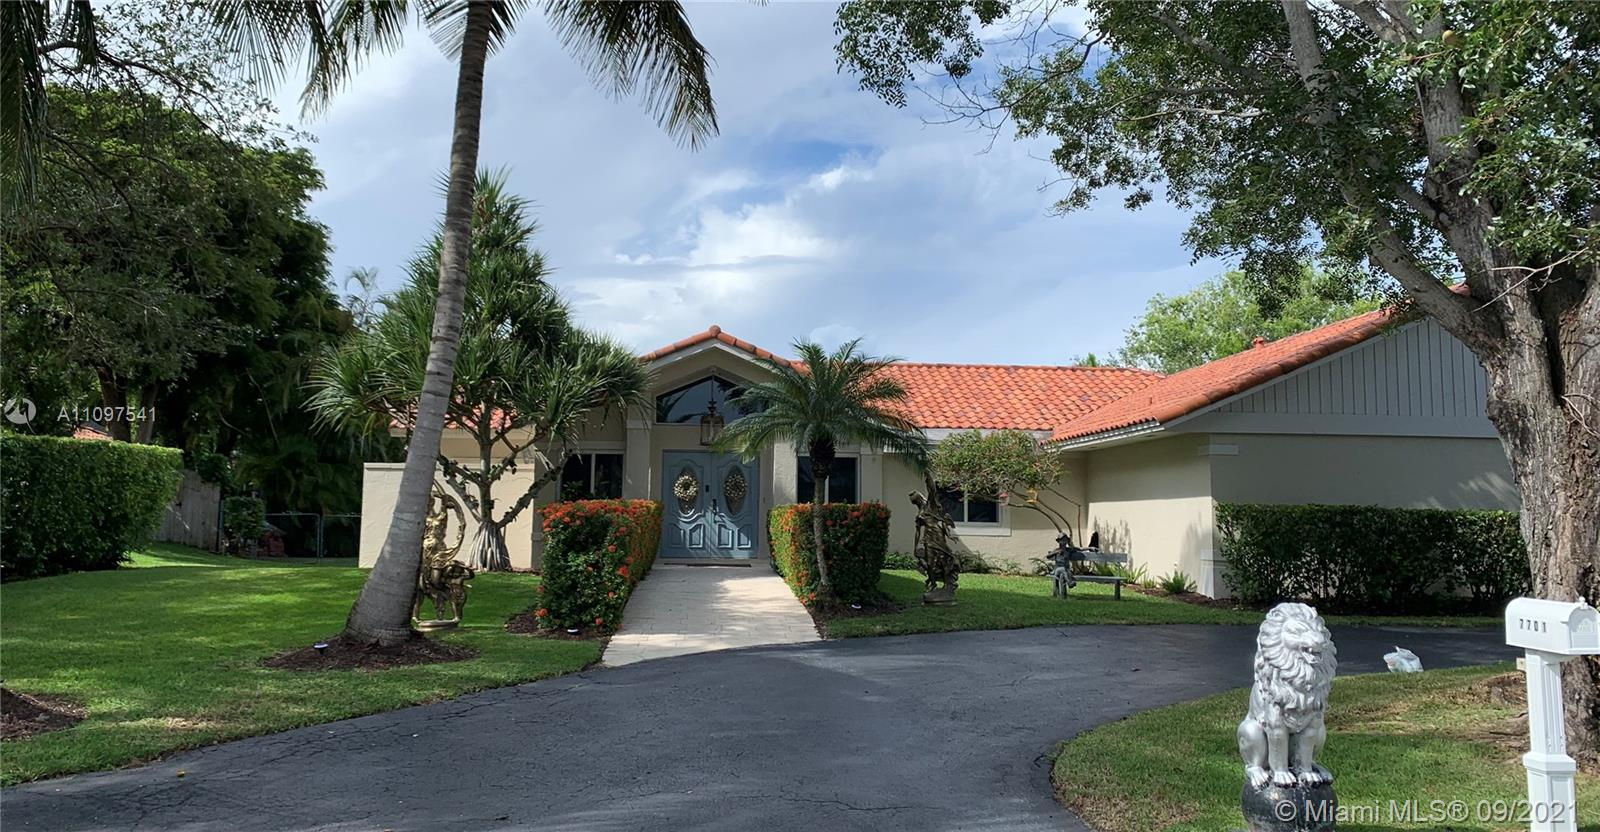 Immaculate corner home in the prestigious Cape Cutler estates of the Village of Palmetto Bay, Top of the line appliances, enormous pantry, open concept, 4 bedrooms plus den, 2 full bathrooms plus guest bathroom, impact windows, heated salt water pool, two a/c that keep this beautiful home at perfect temperatures, best Miami Dade school district, plus exceptional private schools in the area.  Lots of art work that buyer can purchase separate if desire. By appointment only with 24 hours notice. Showings will start Thursday, Sept 16 afternoon.